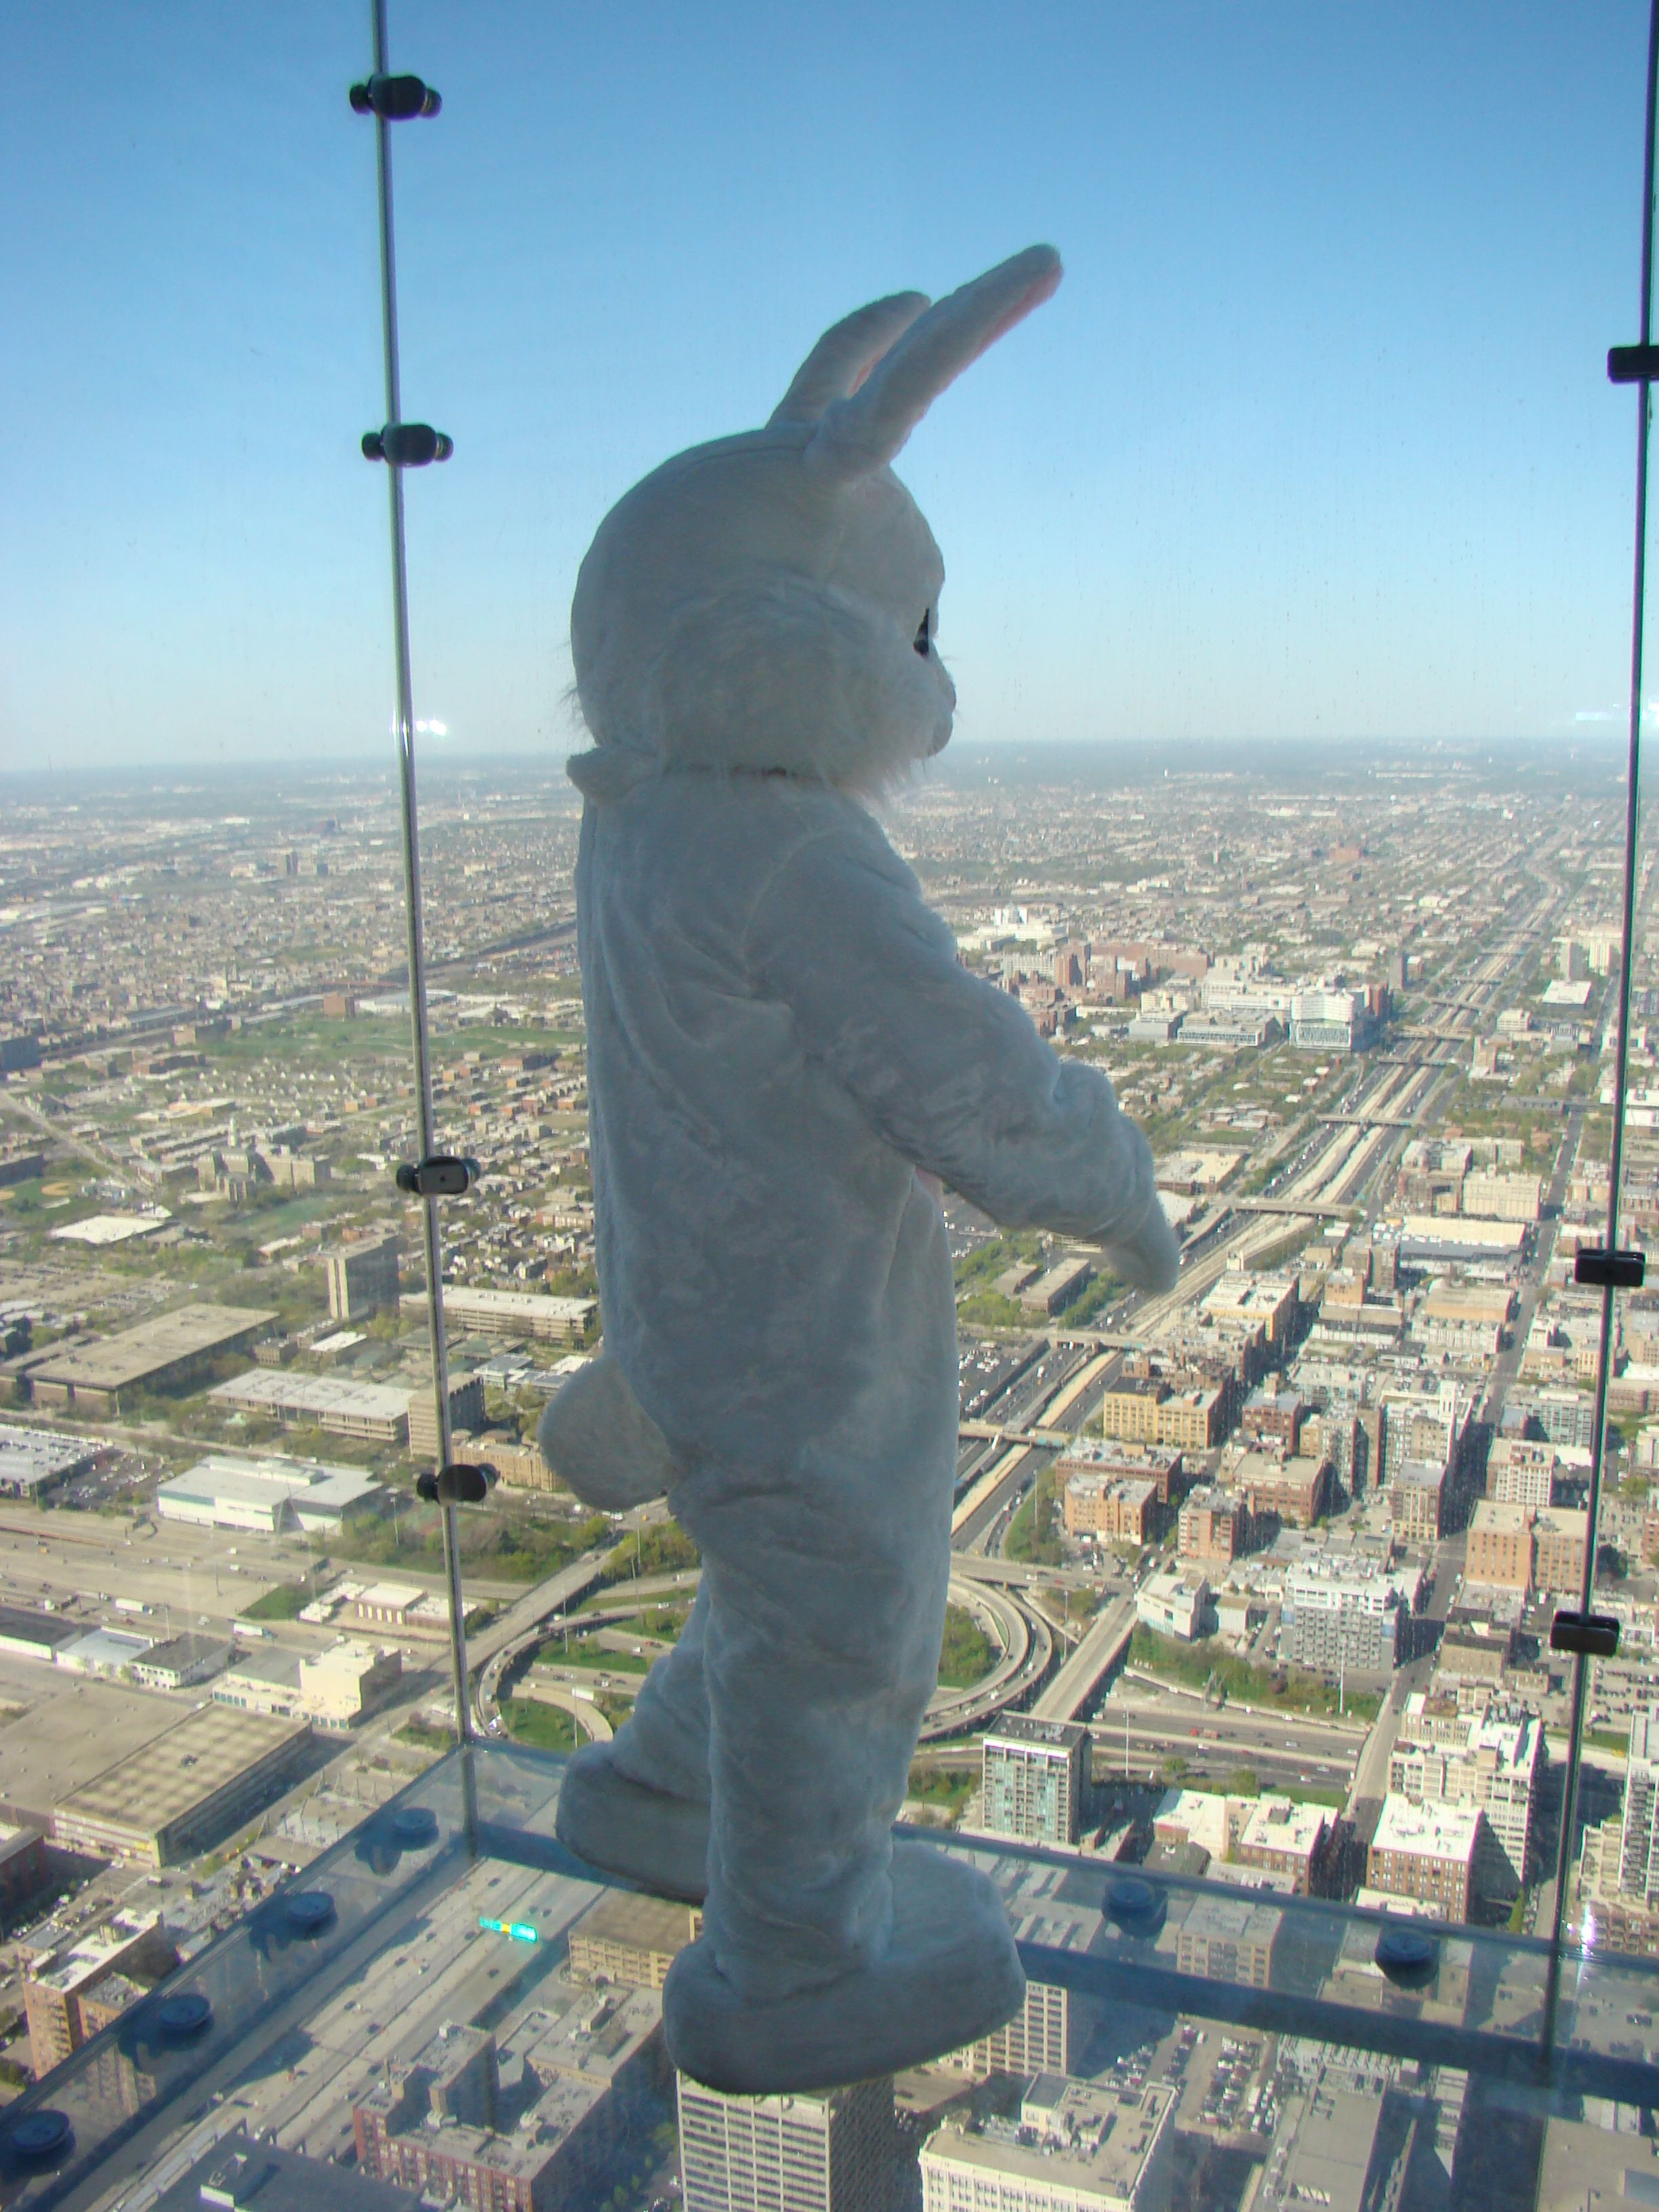 Skydeck Chicago Private Events Skydeck Chicago Chicago Hotels Chicago